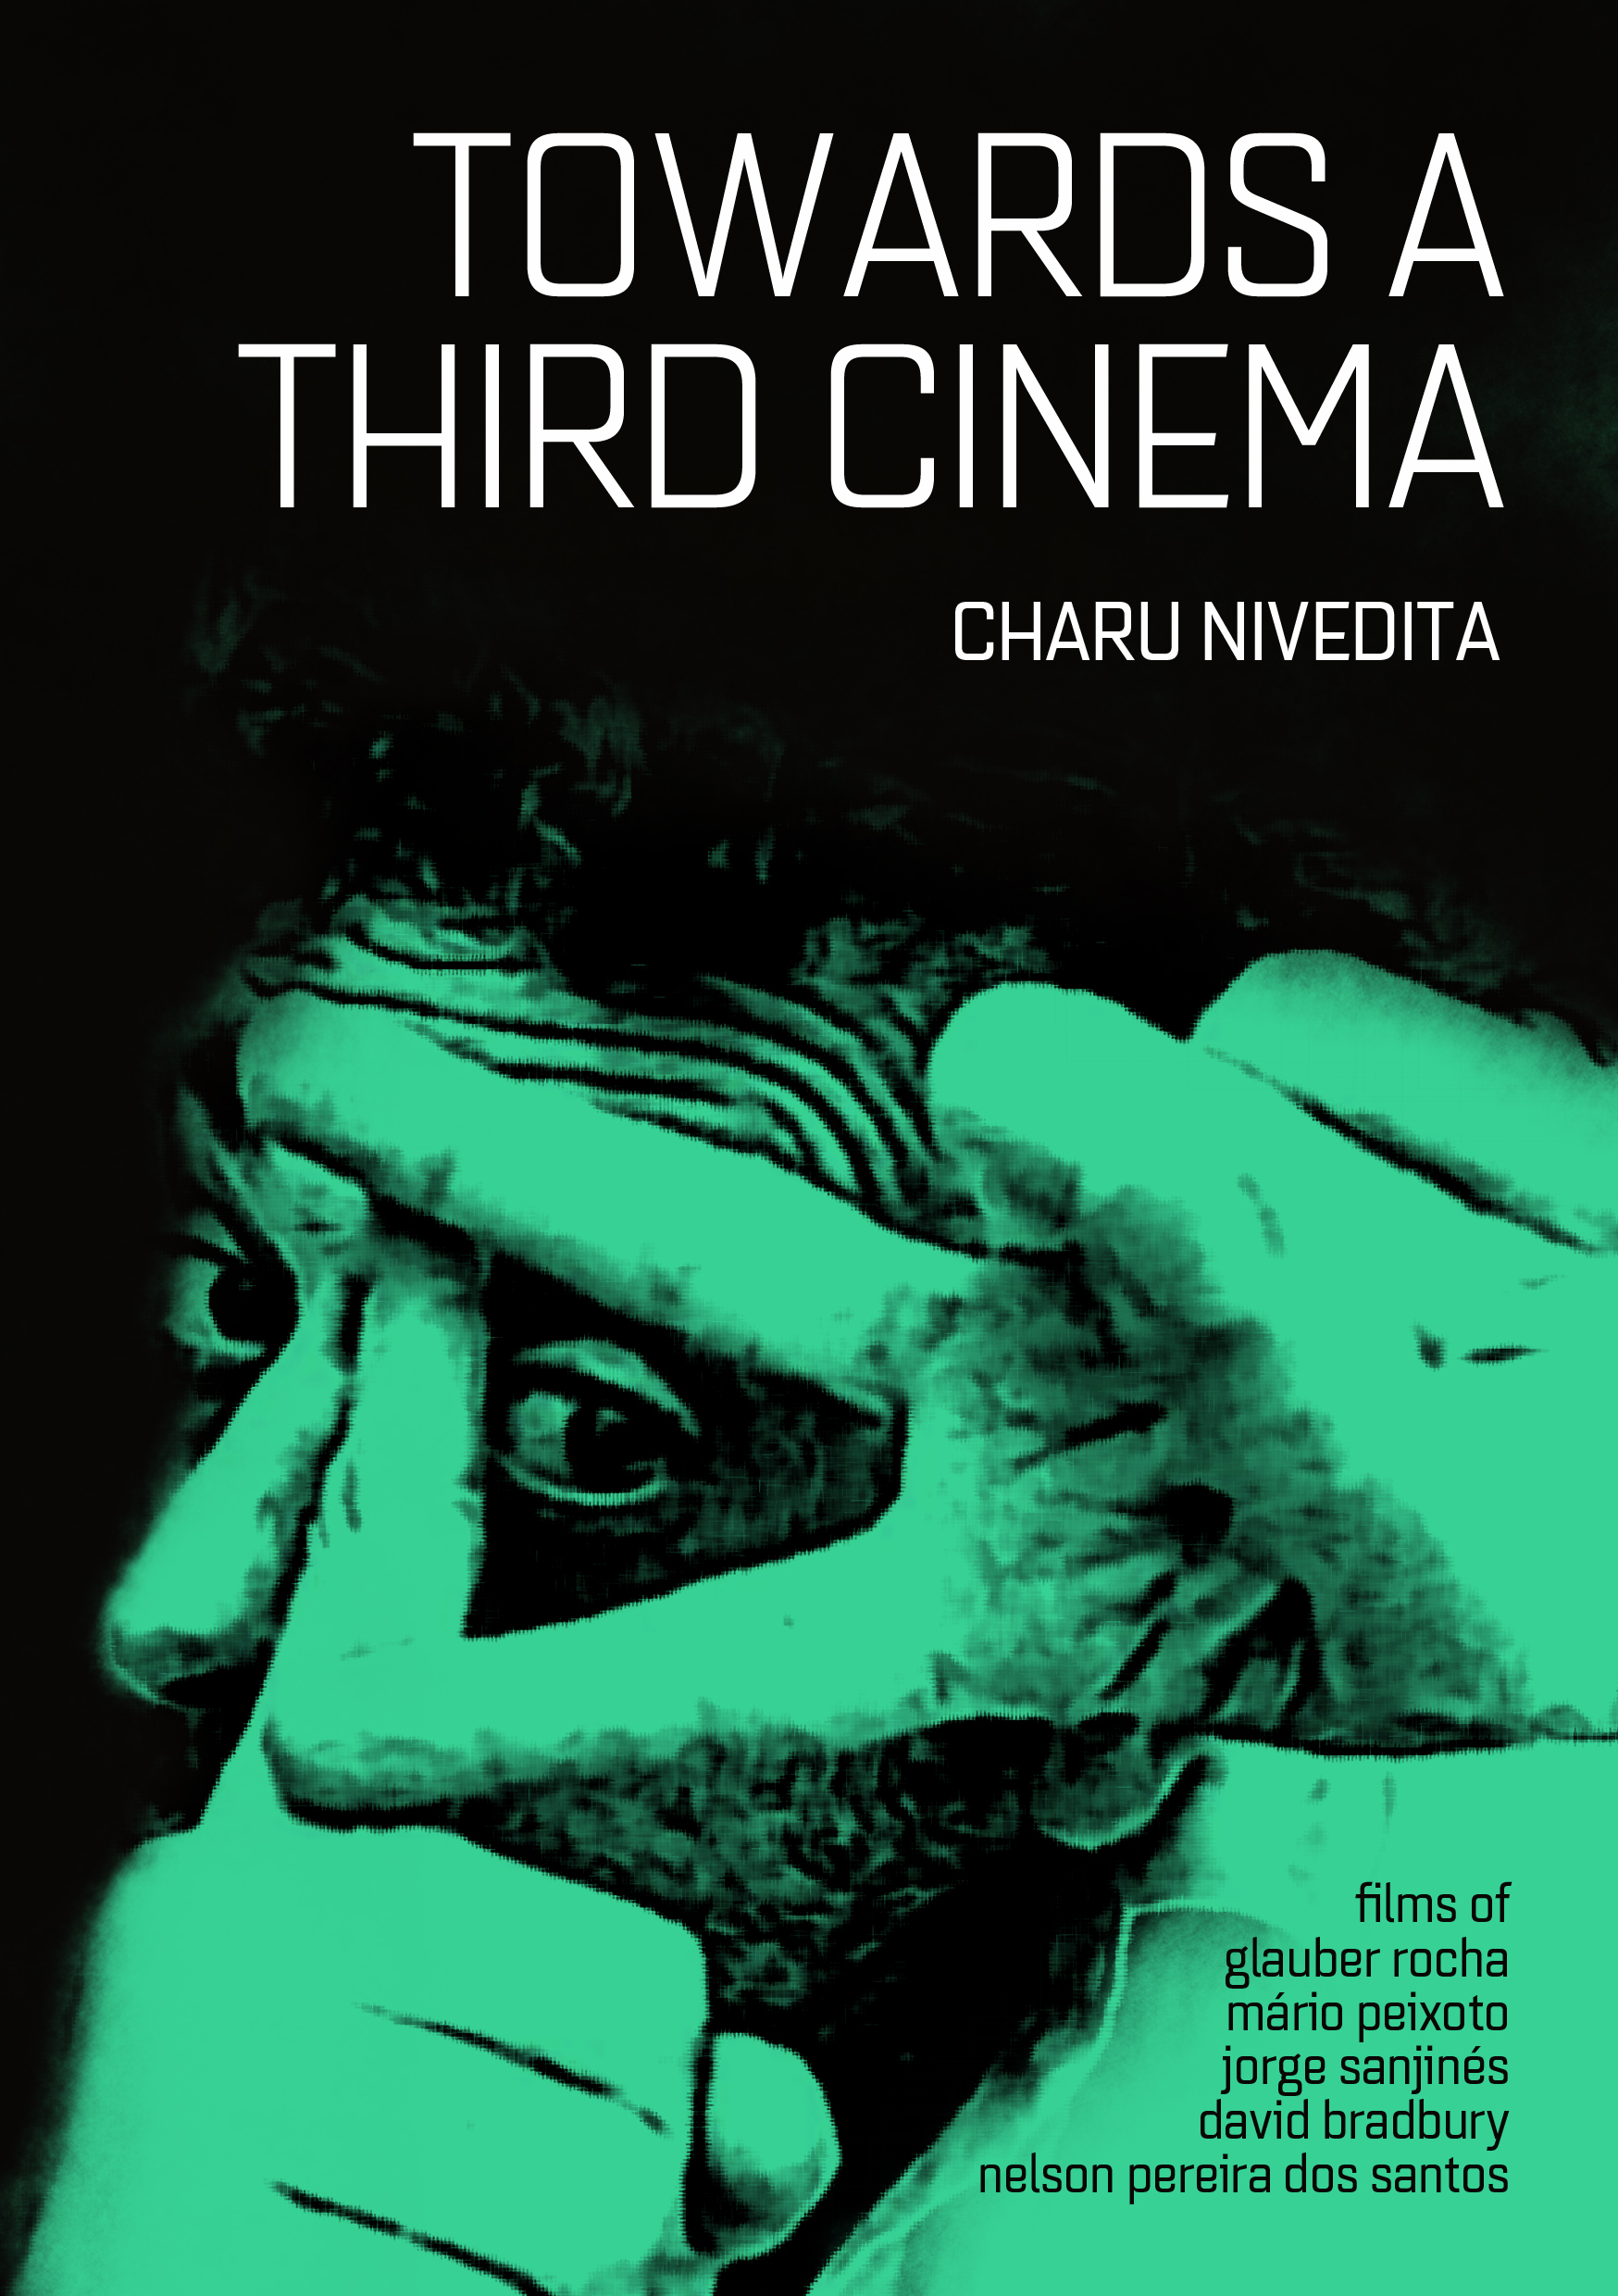 TOWARDS A THIRD CINEMA - 1 C (2)